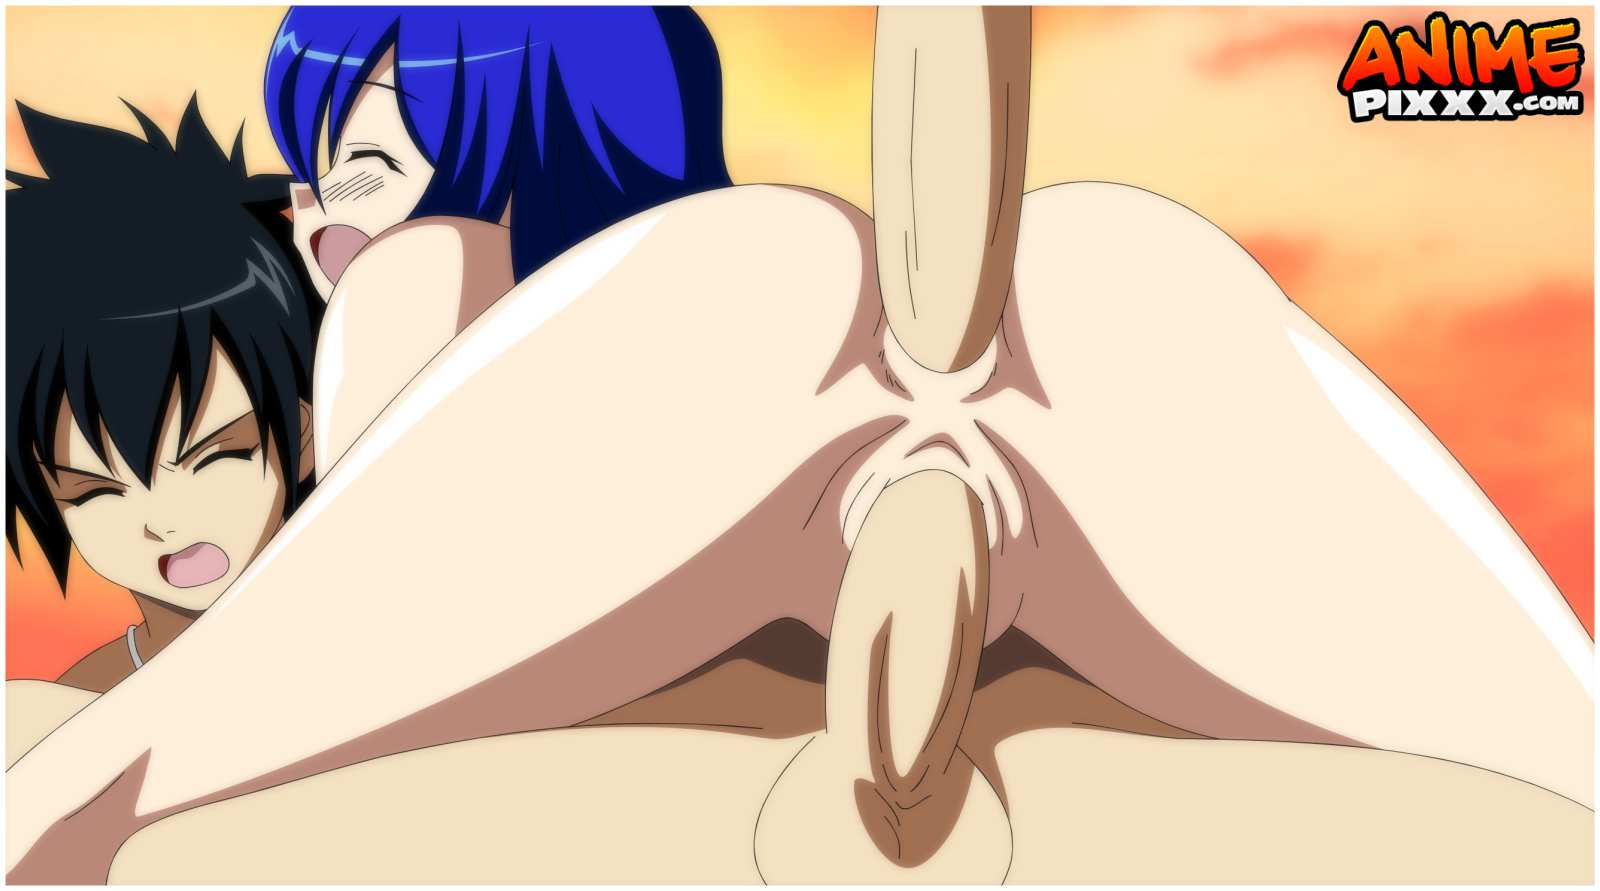 Fairy tail nudepic exposed videos